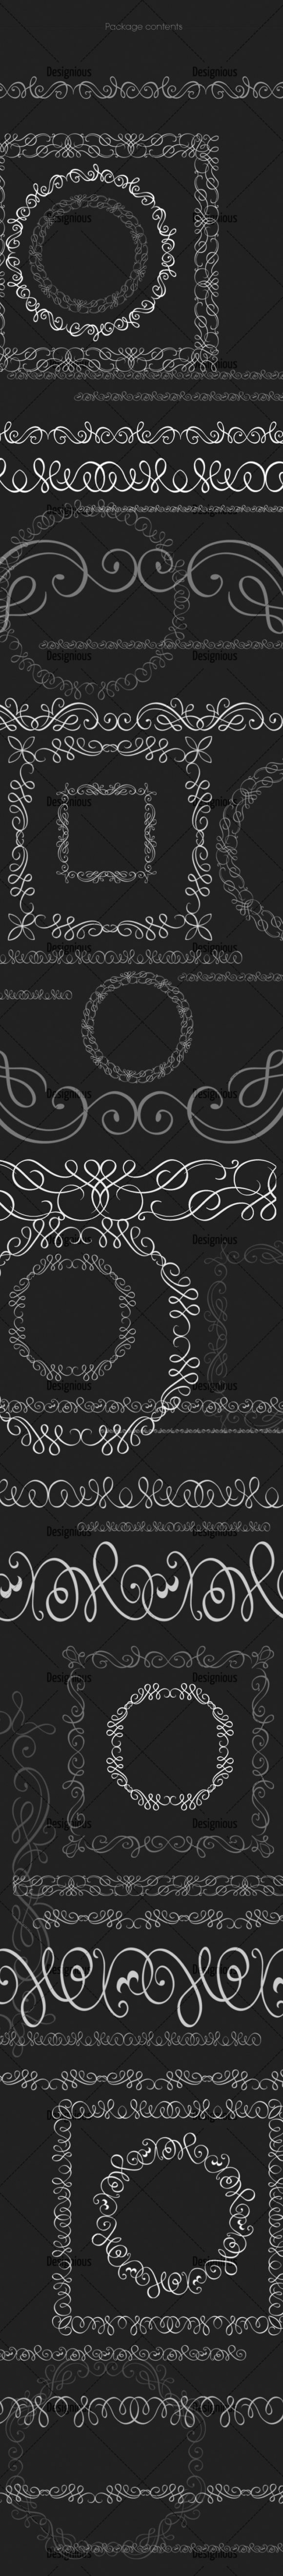 Ornamental Floral Brushes Pack 64 Floral brushes [tag]